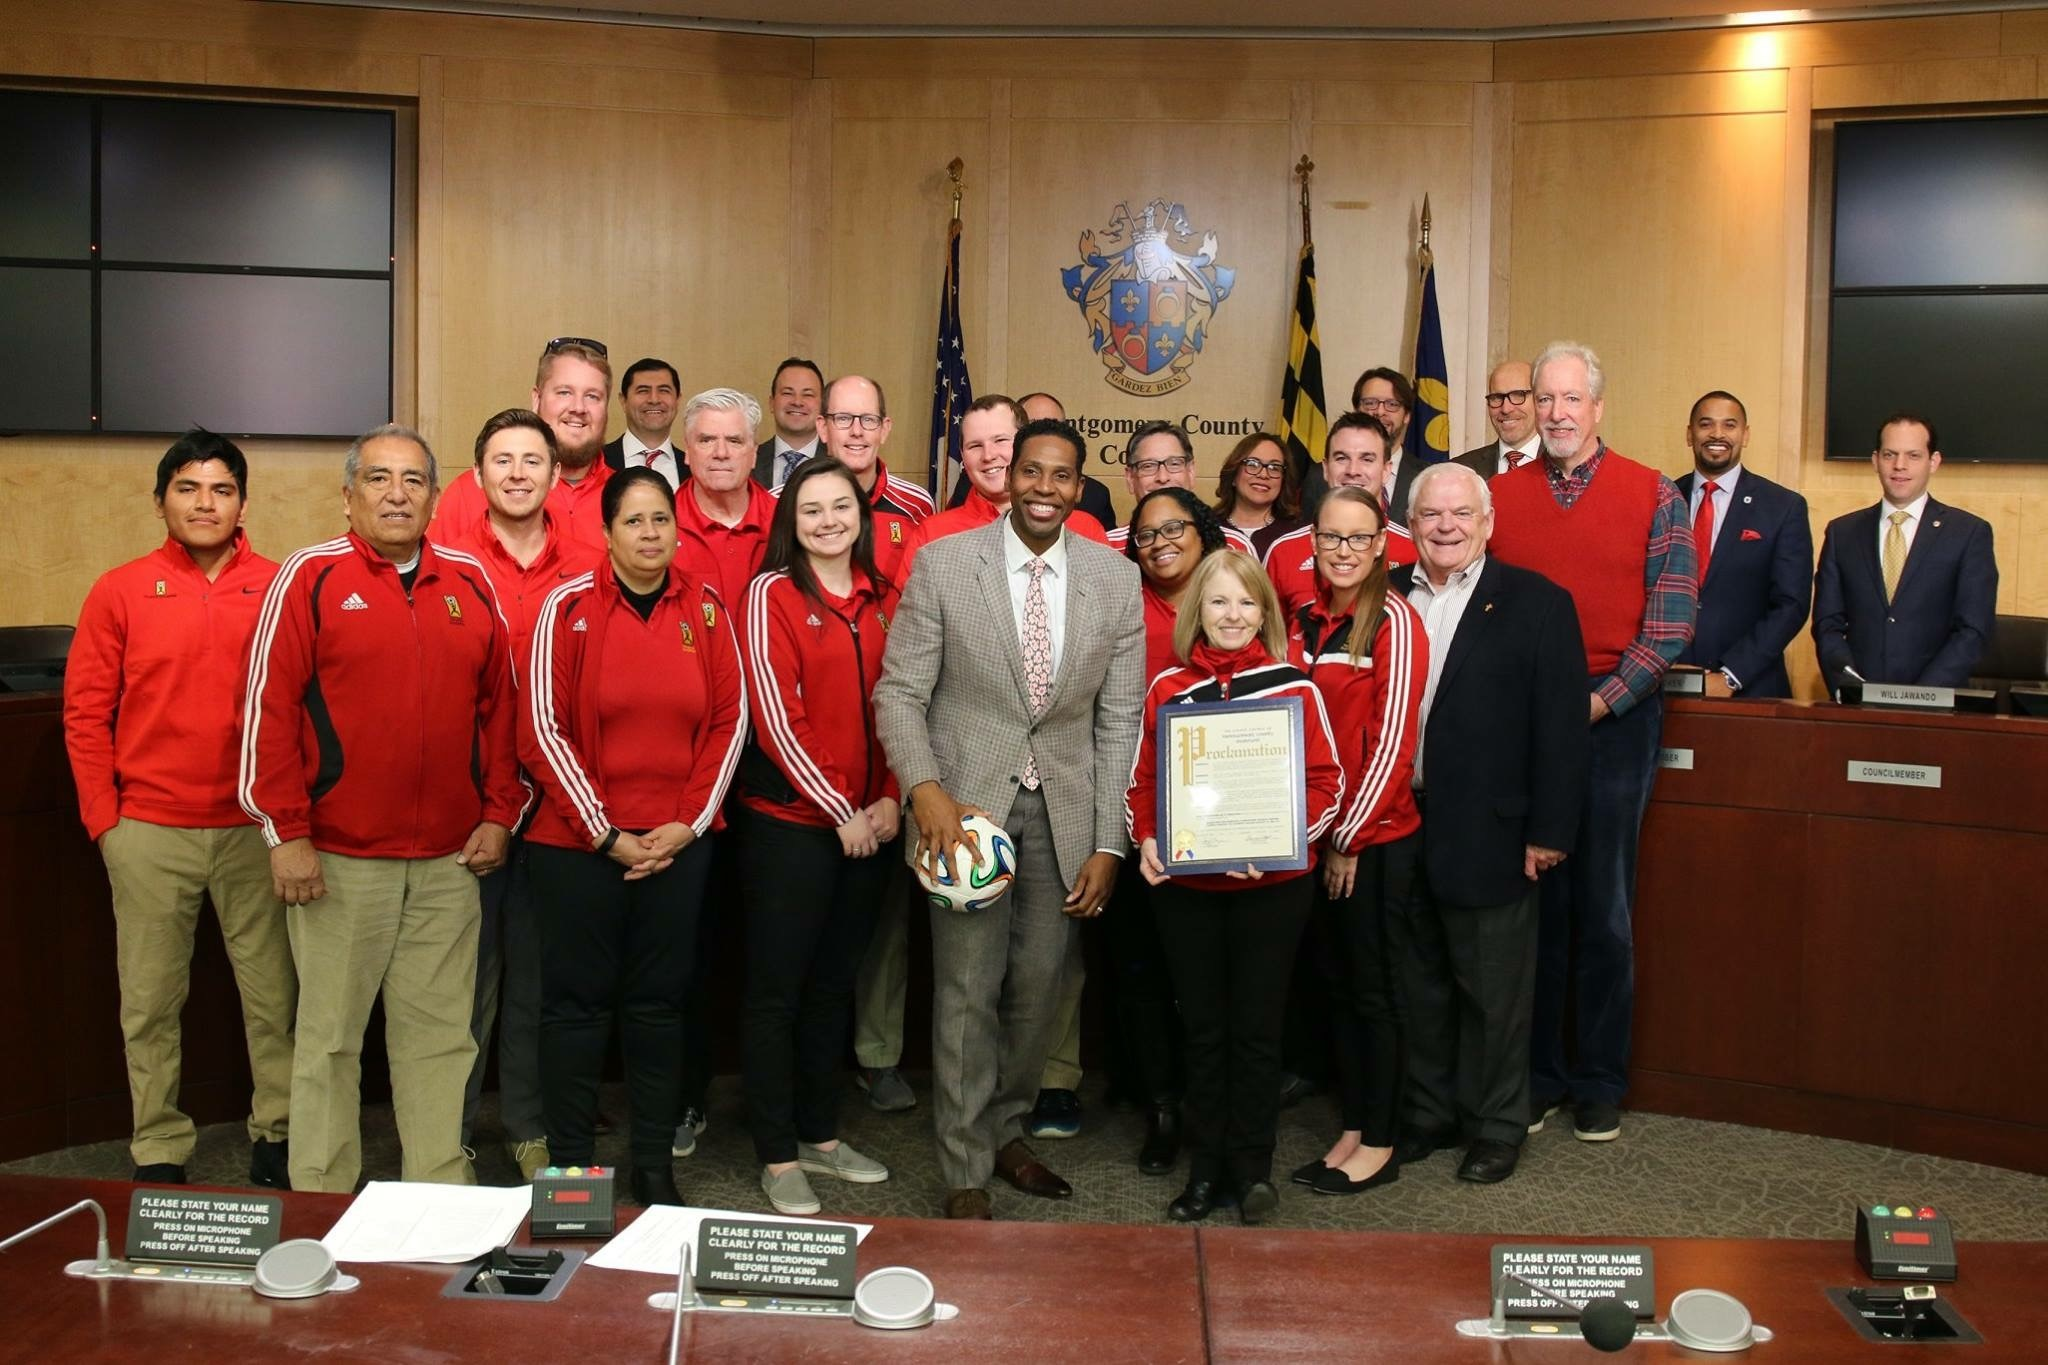 Maryland SoccerPlex honored by Councilmember Craig Rice with Proclamation